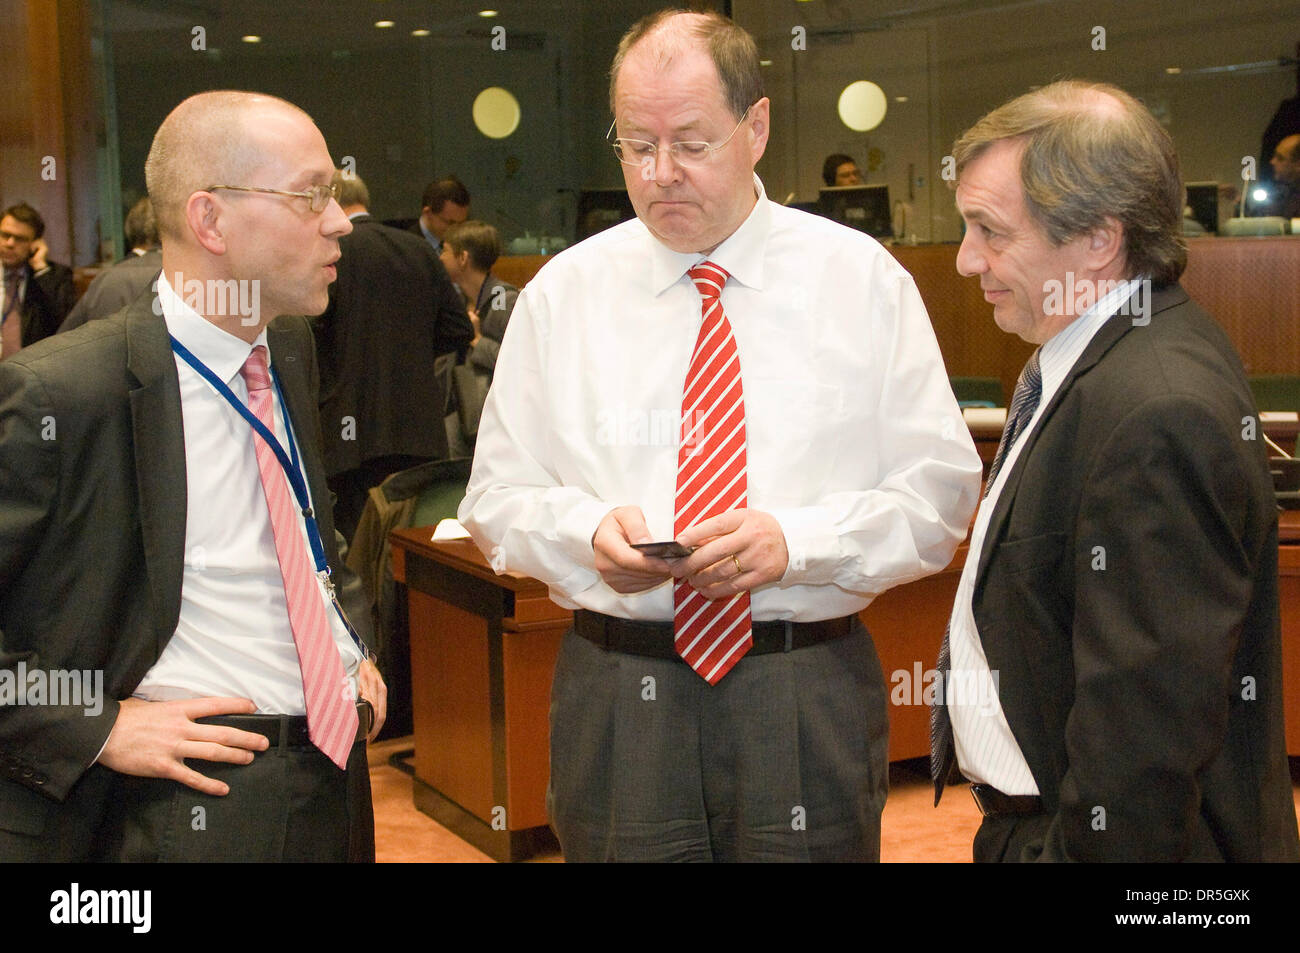 Dec 02, 2008 - Brussels, Belgium - German Finance Minister PEER STEINBRUECK (C)  and Luxembourg's Economy and Foreign Trade Minister JEANNOT KRECKE (R) at the start of the Ecofin, Finance ministers meeting at the EU headquarters in Brussels. (Credit Image: © Wiktor Dabkowski/ZUMA Press) - Stock Image